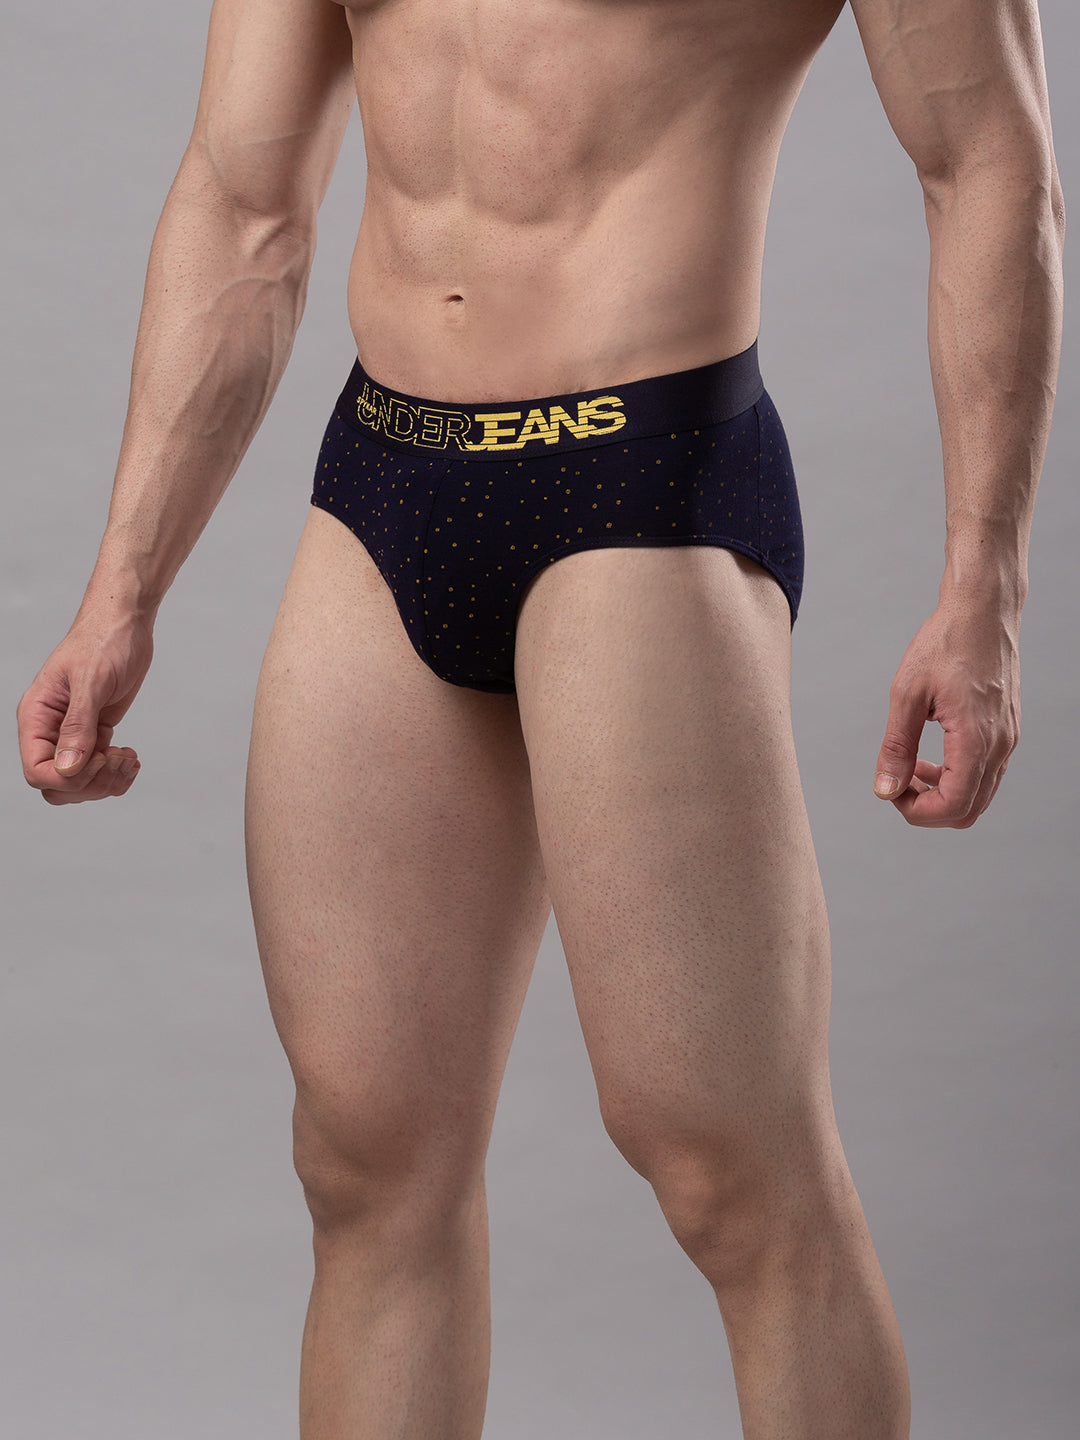 Underjeans Navy Blue Cotton Brief